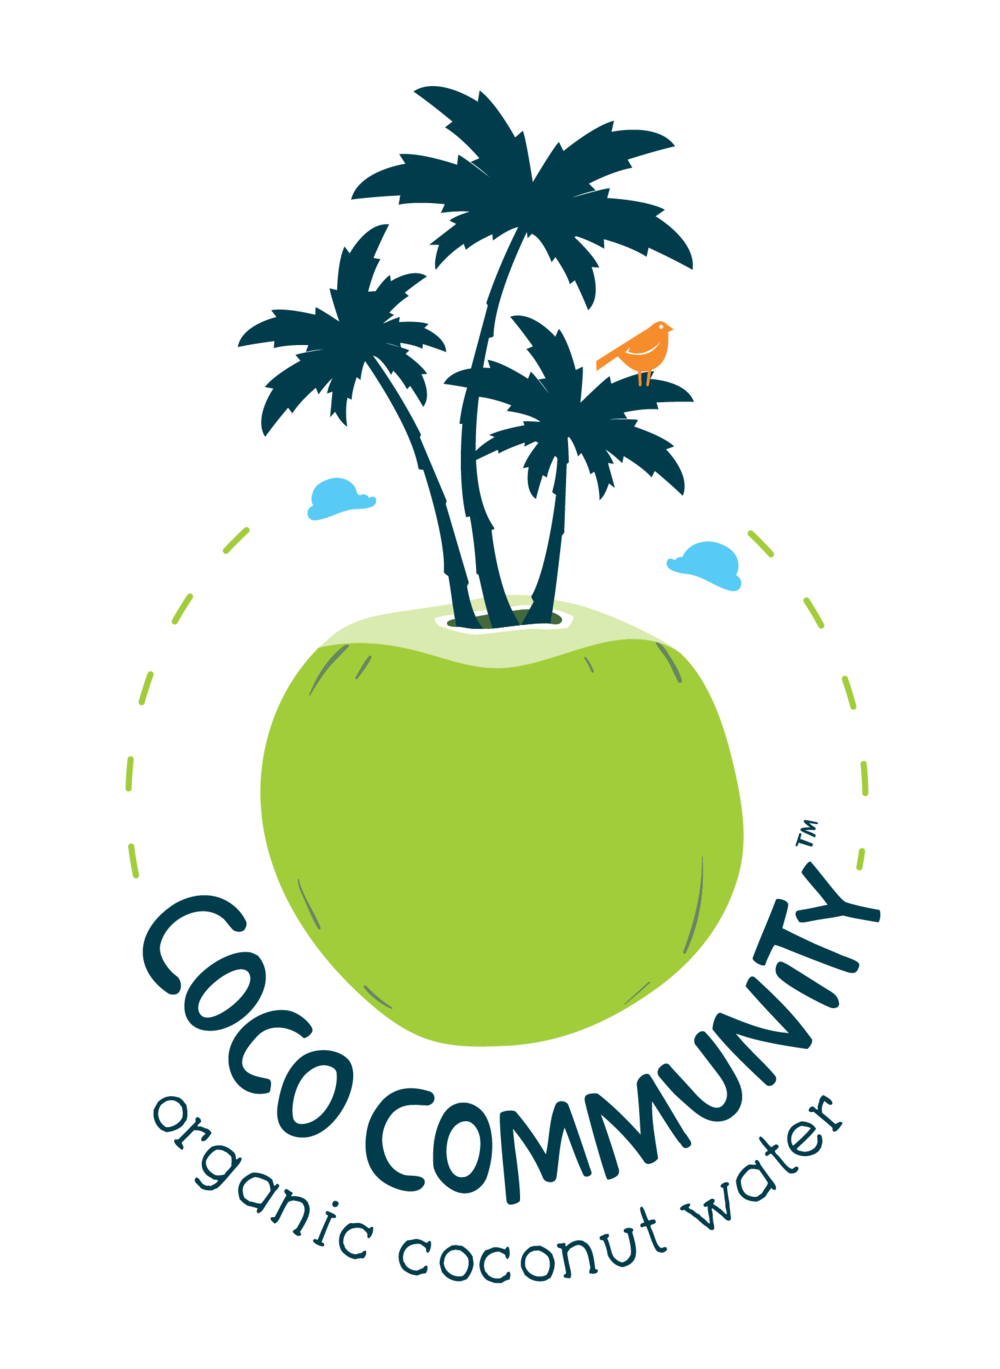 Enjoy a refreshing coconut water provided by Vita Coco.